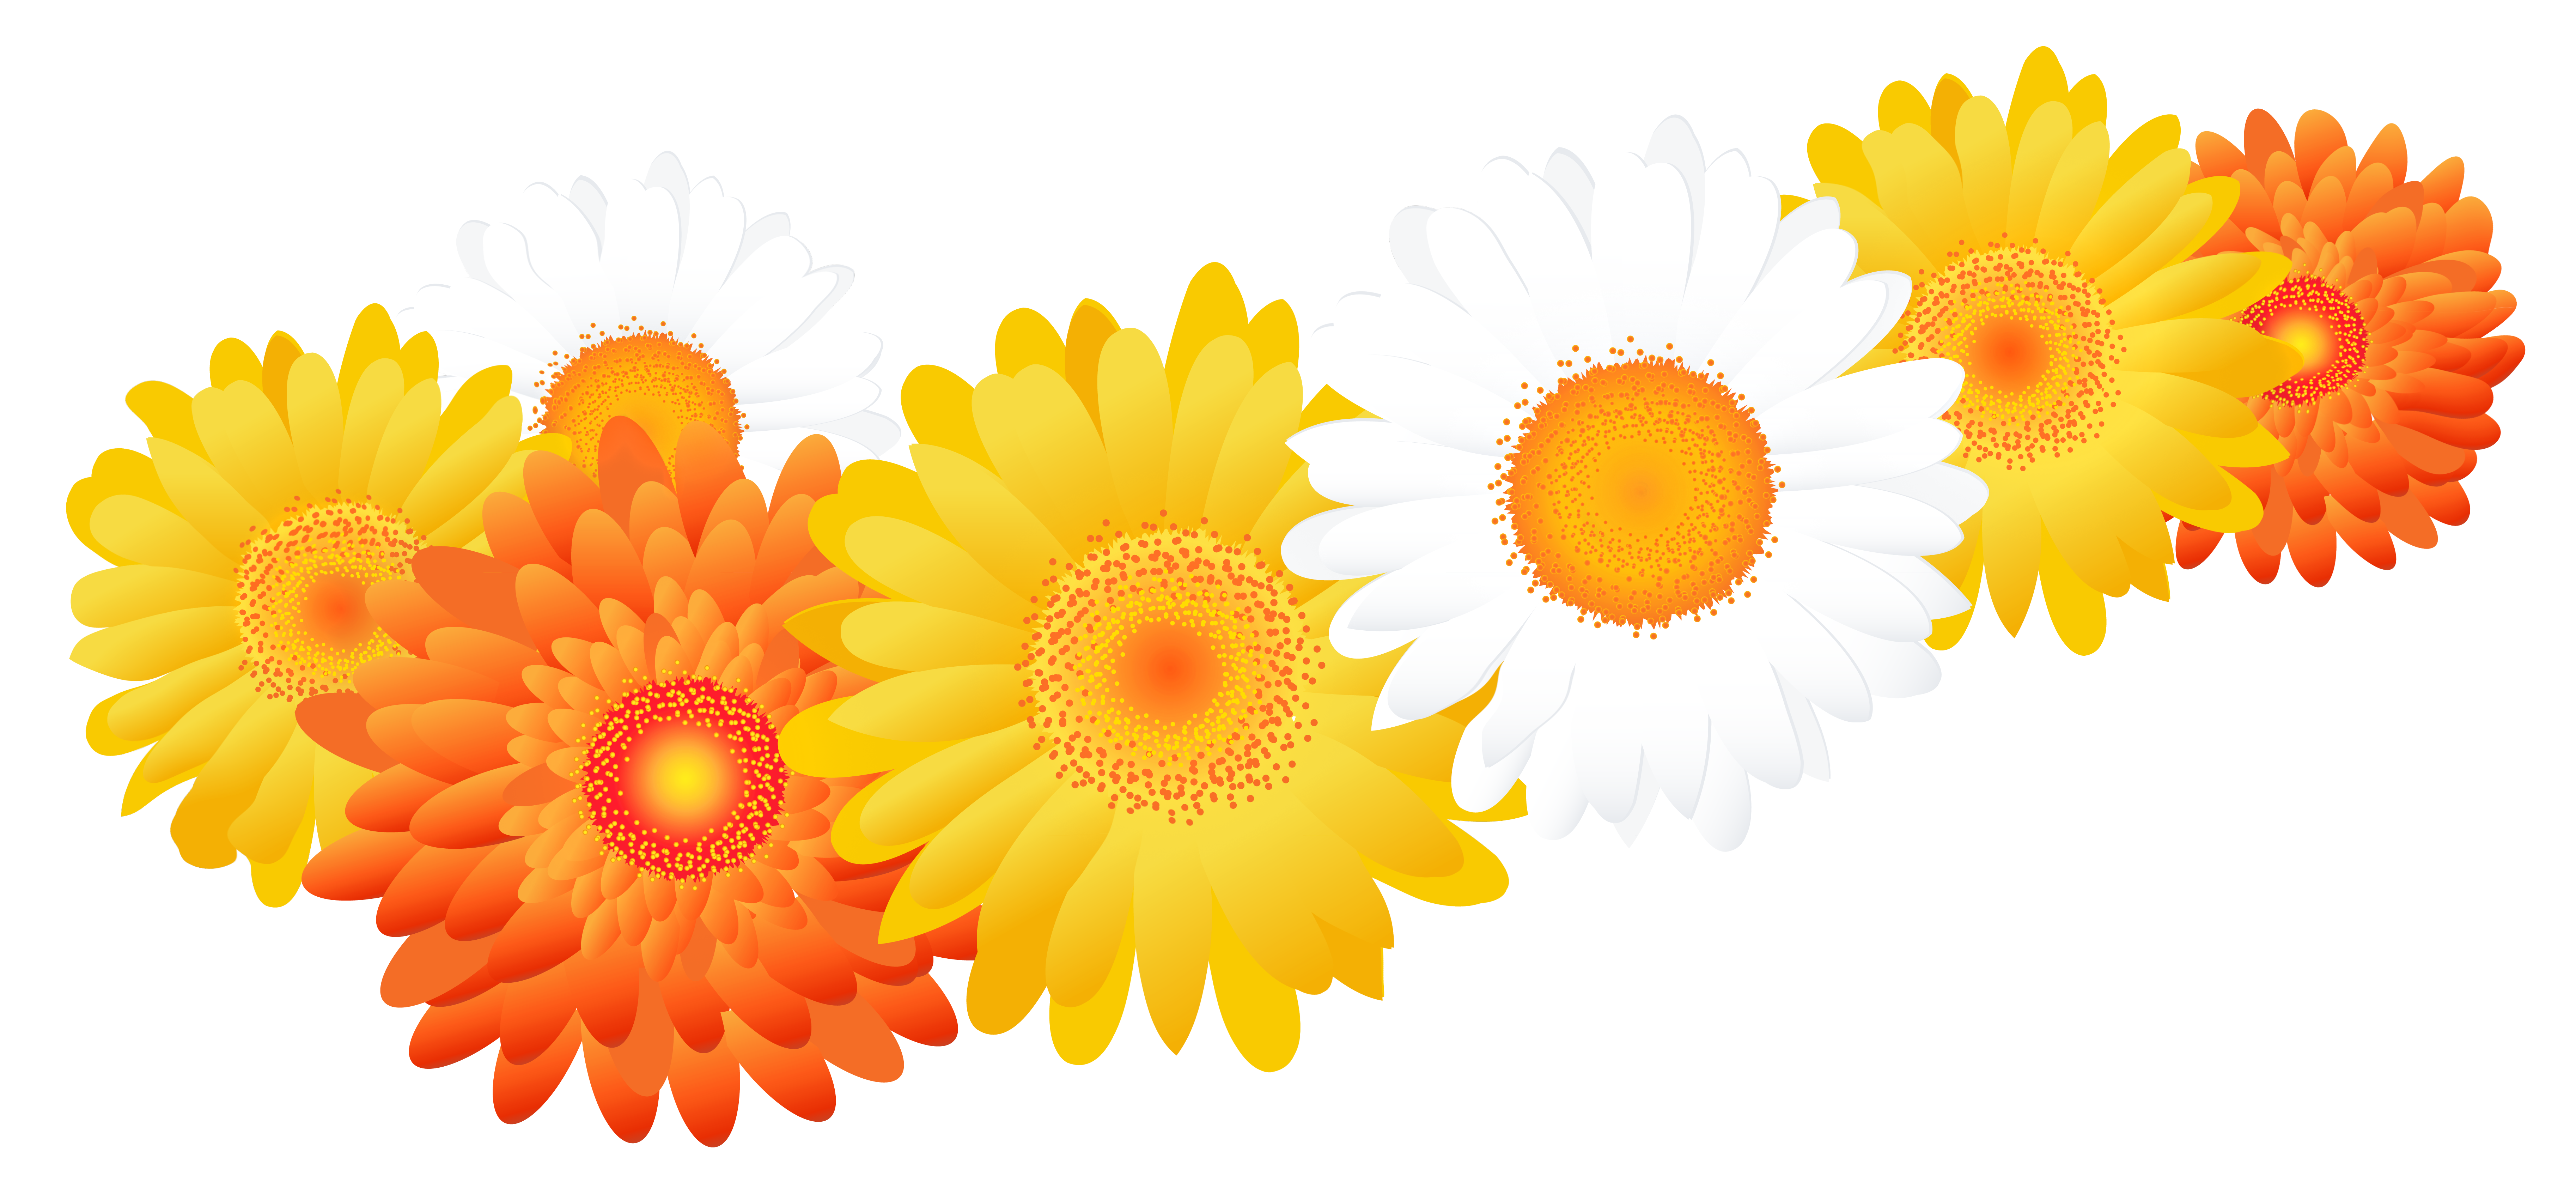 Gerbera clipart sunflower Full with Image High Gallery